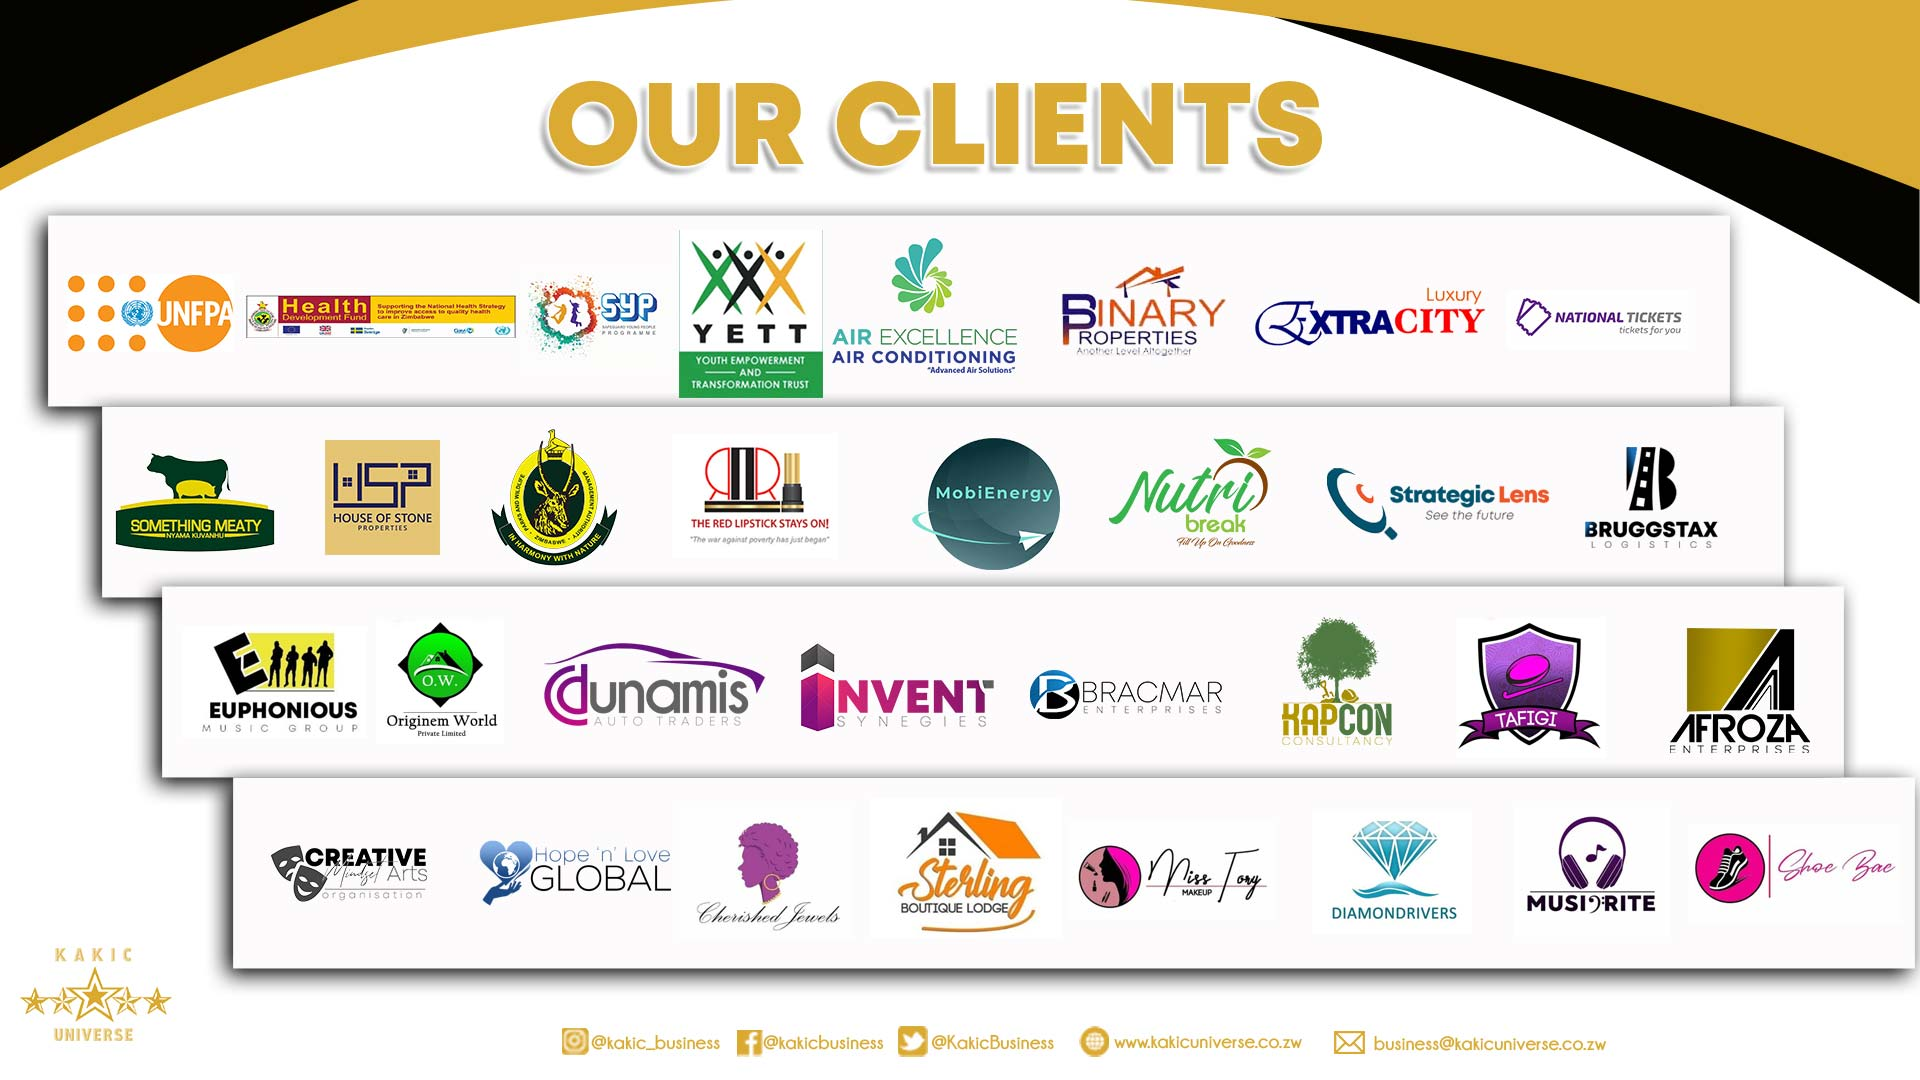 Our clients | Zimbabwe Animation | Kakic Universe